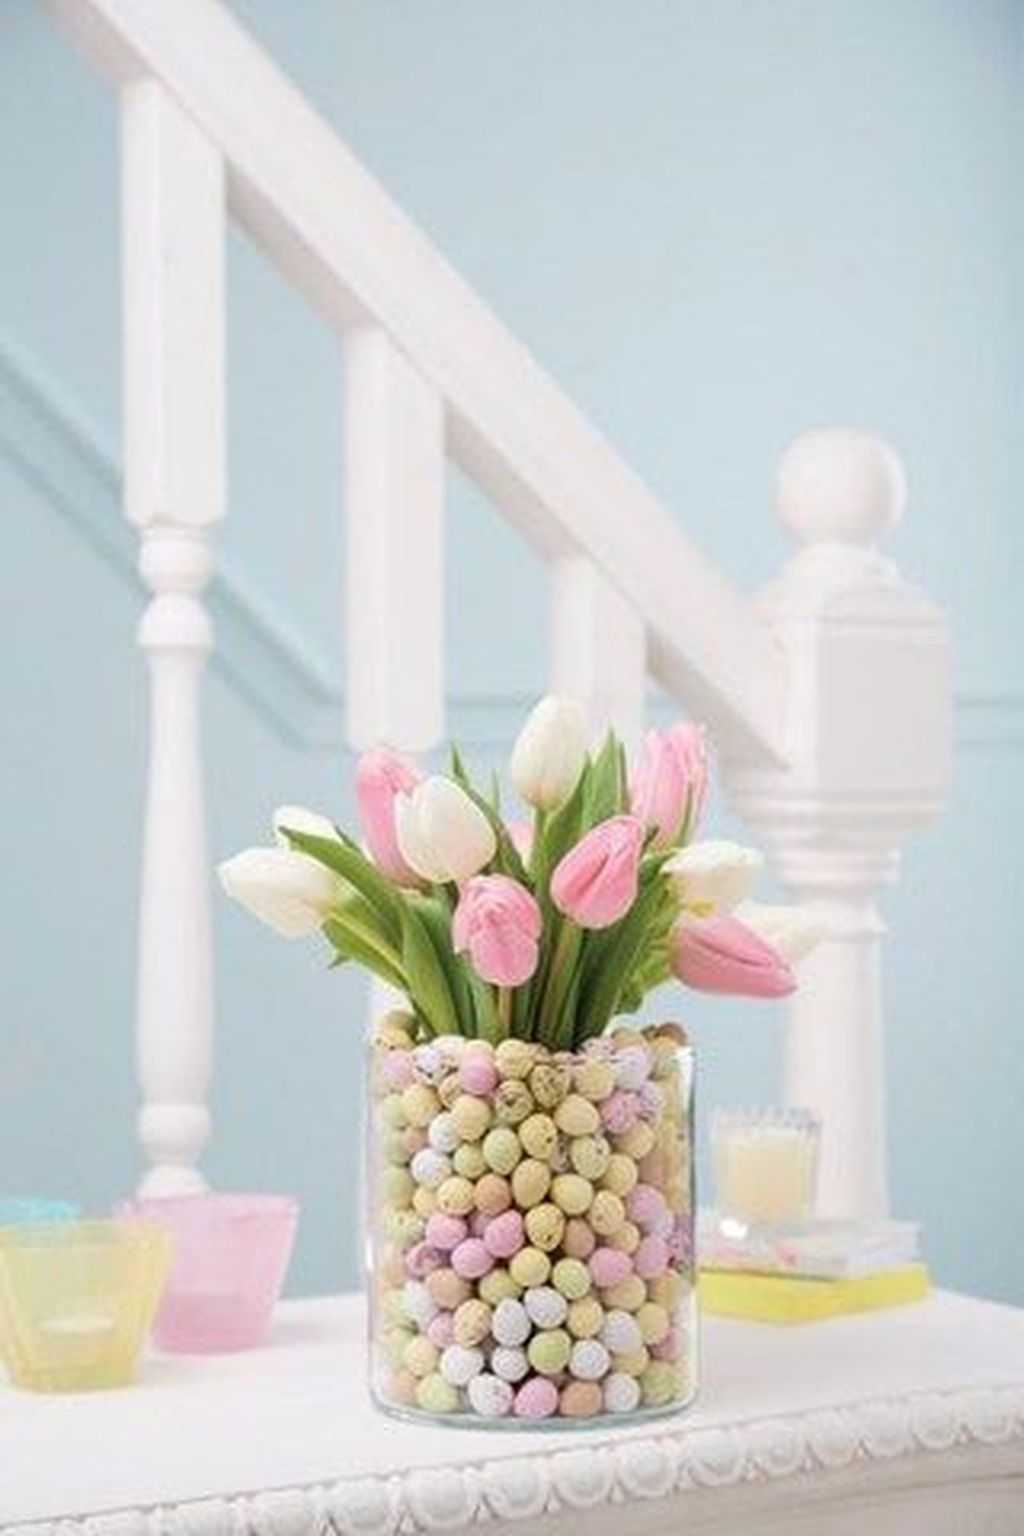 Wedding decorations ideas at home   Great Easter Decoration Ideas  Home Decor  Pinterest  Decoration